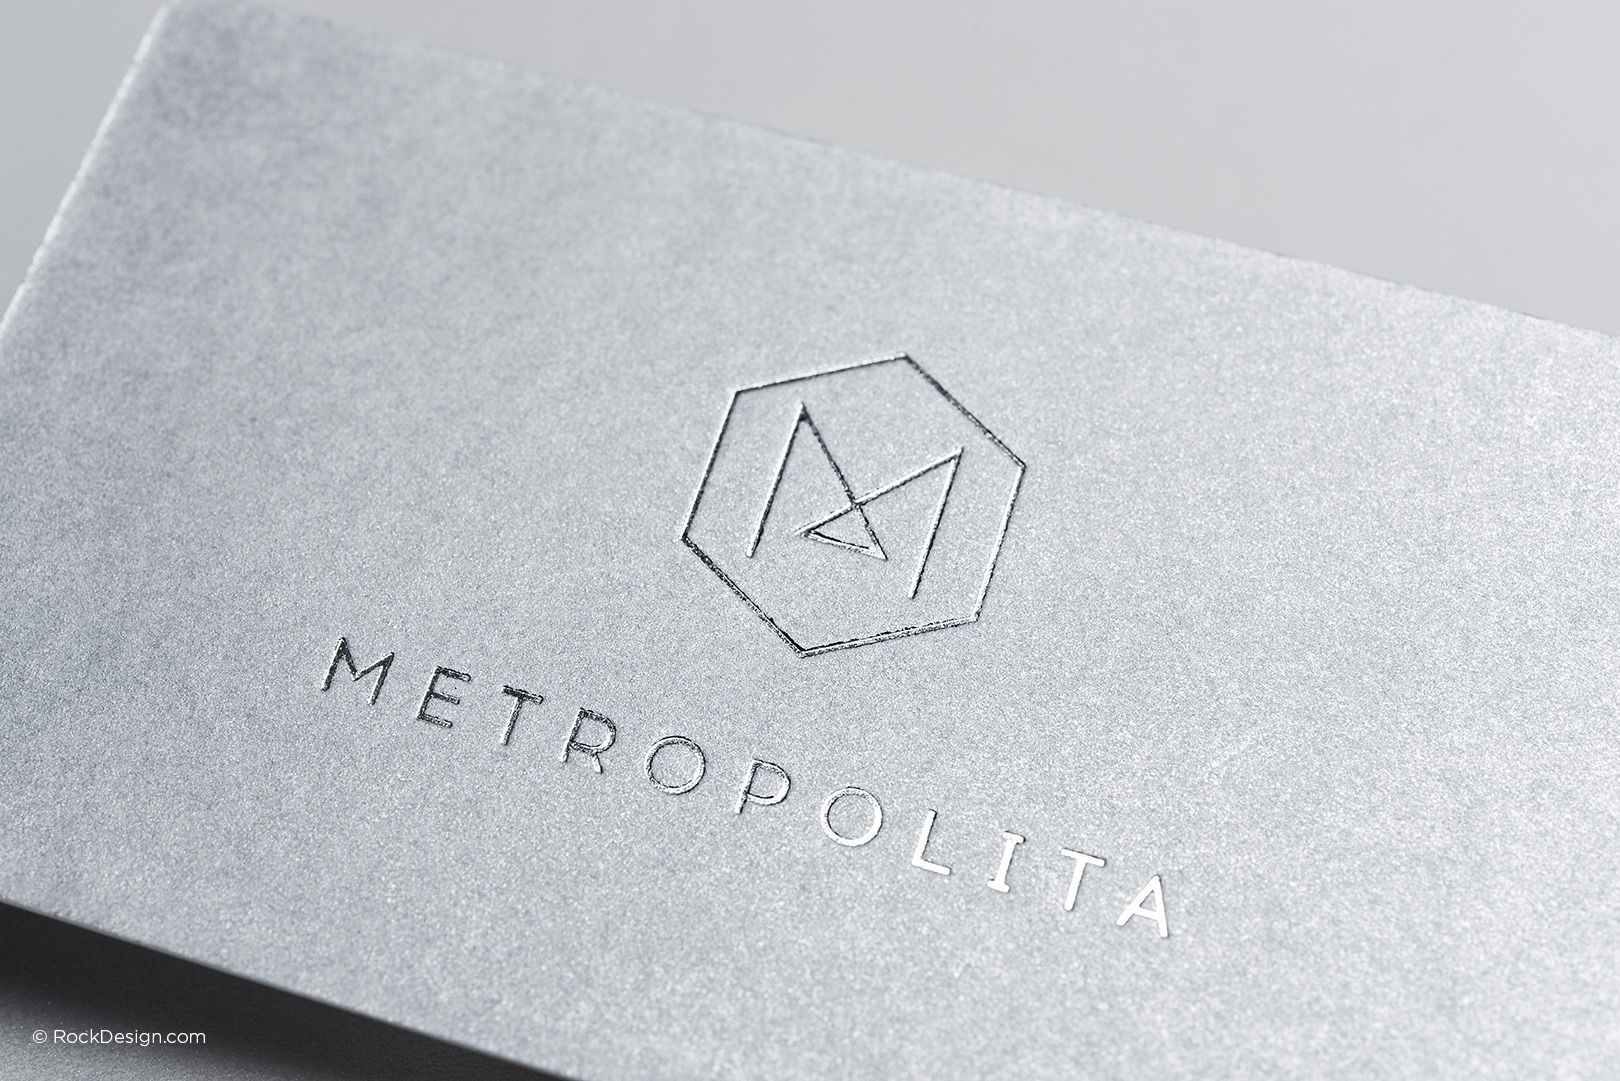 Modern professional monogram metallic silver business card use our free luxury templates to create your visit cards today buy silver realtor business cards online today to expand your business reheart